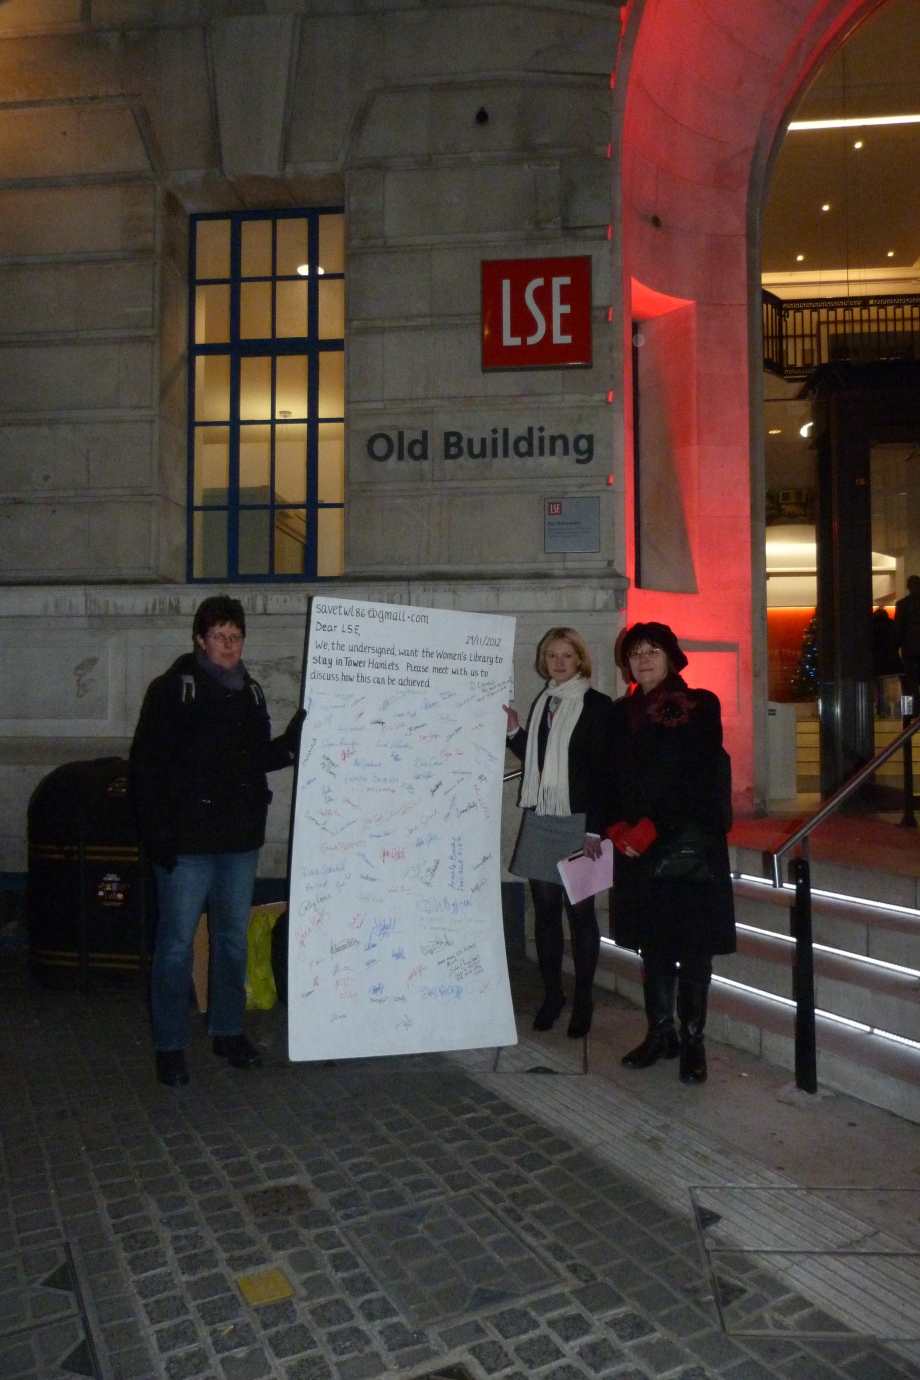 delivering letter to LSE